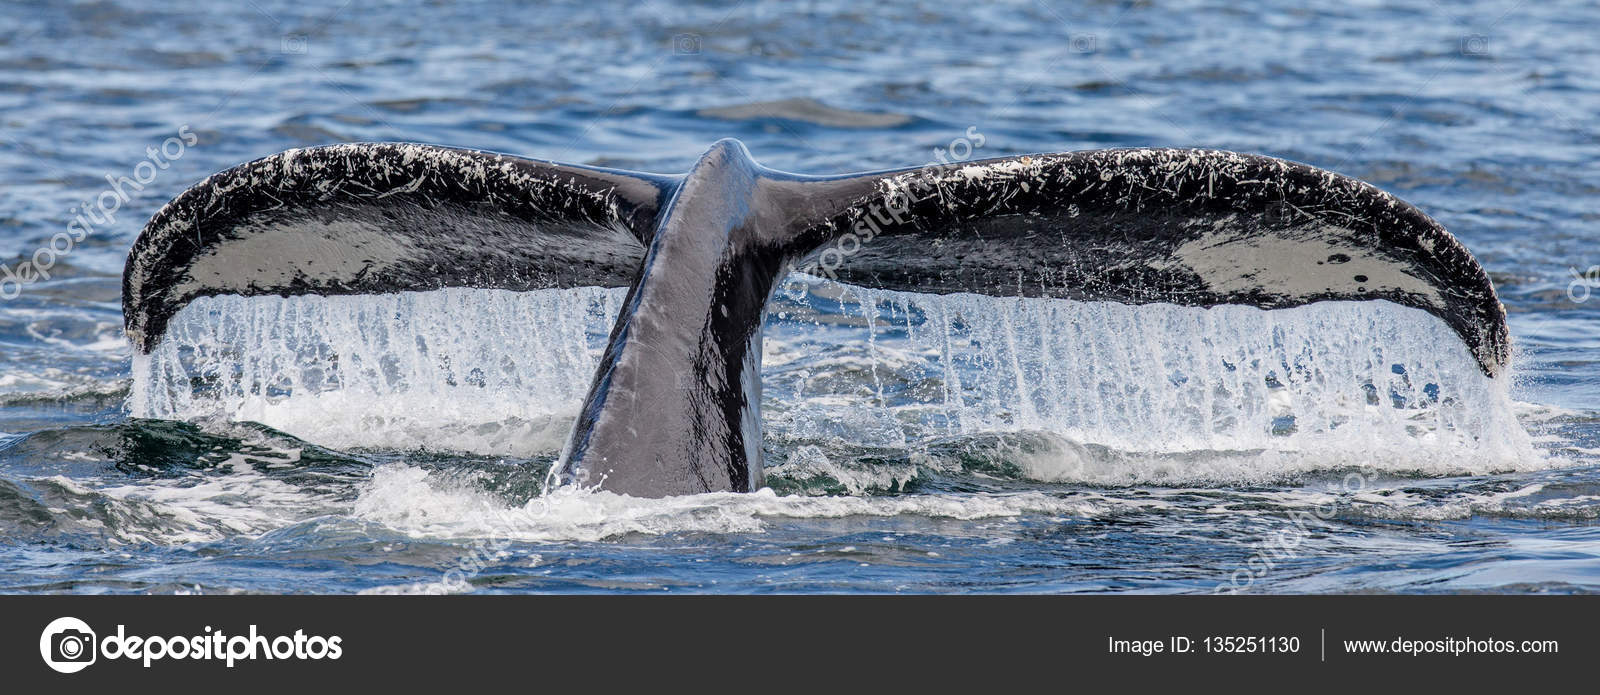 Tail of humpback whale — Fotografia de Stock